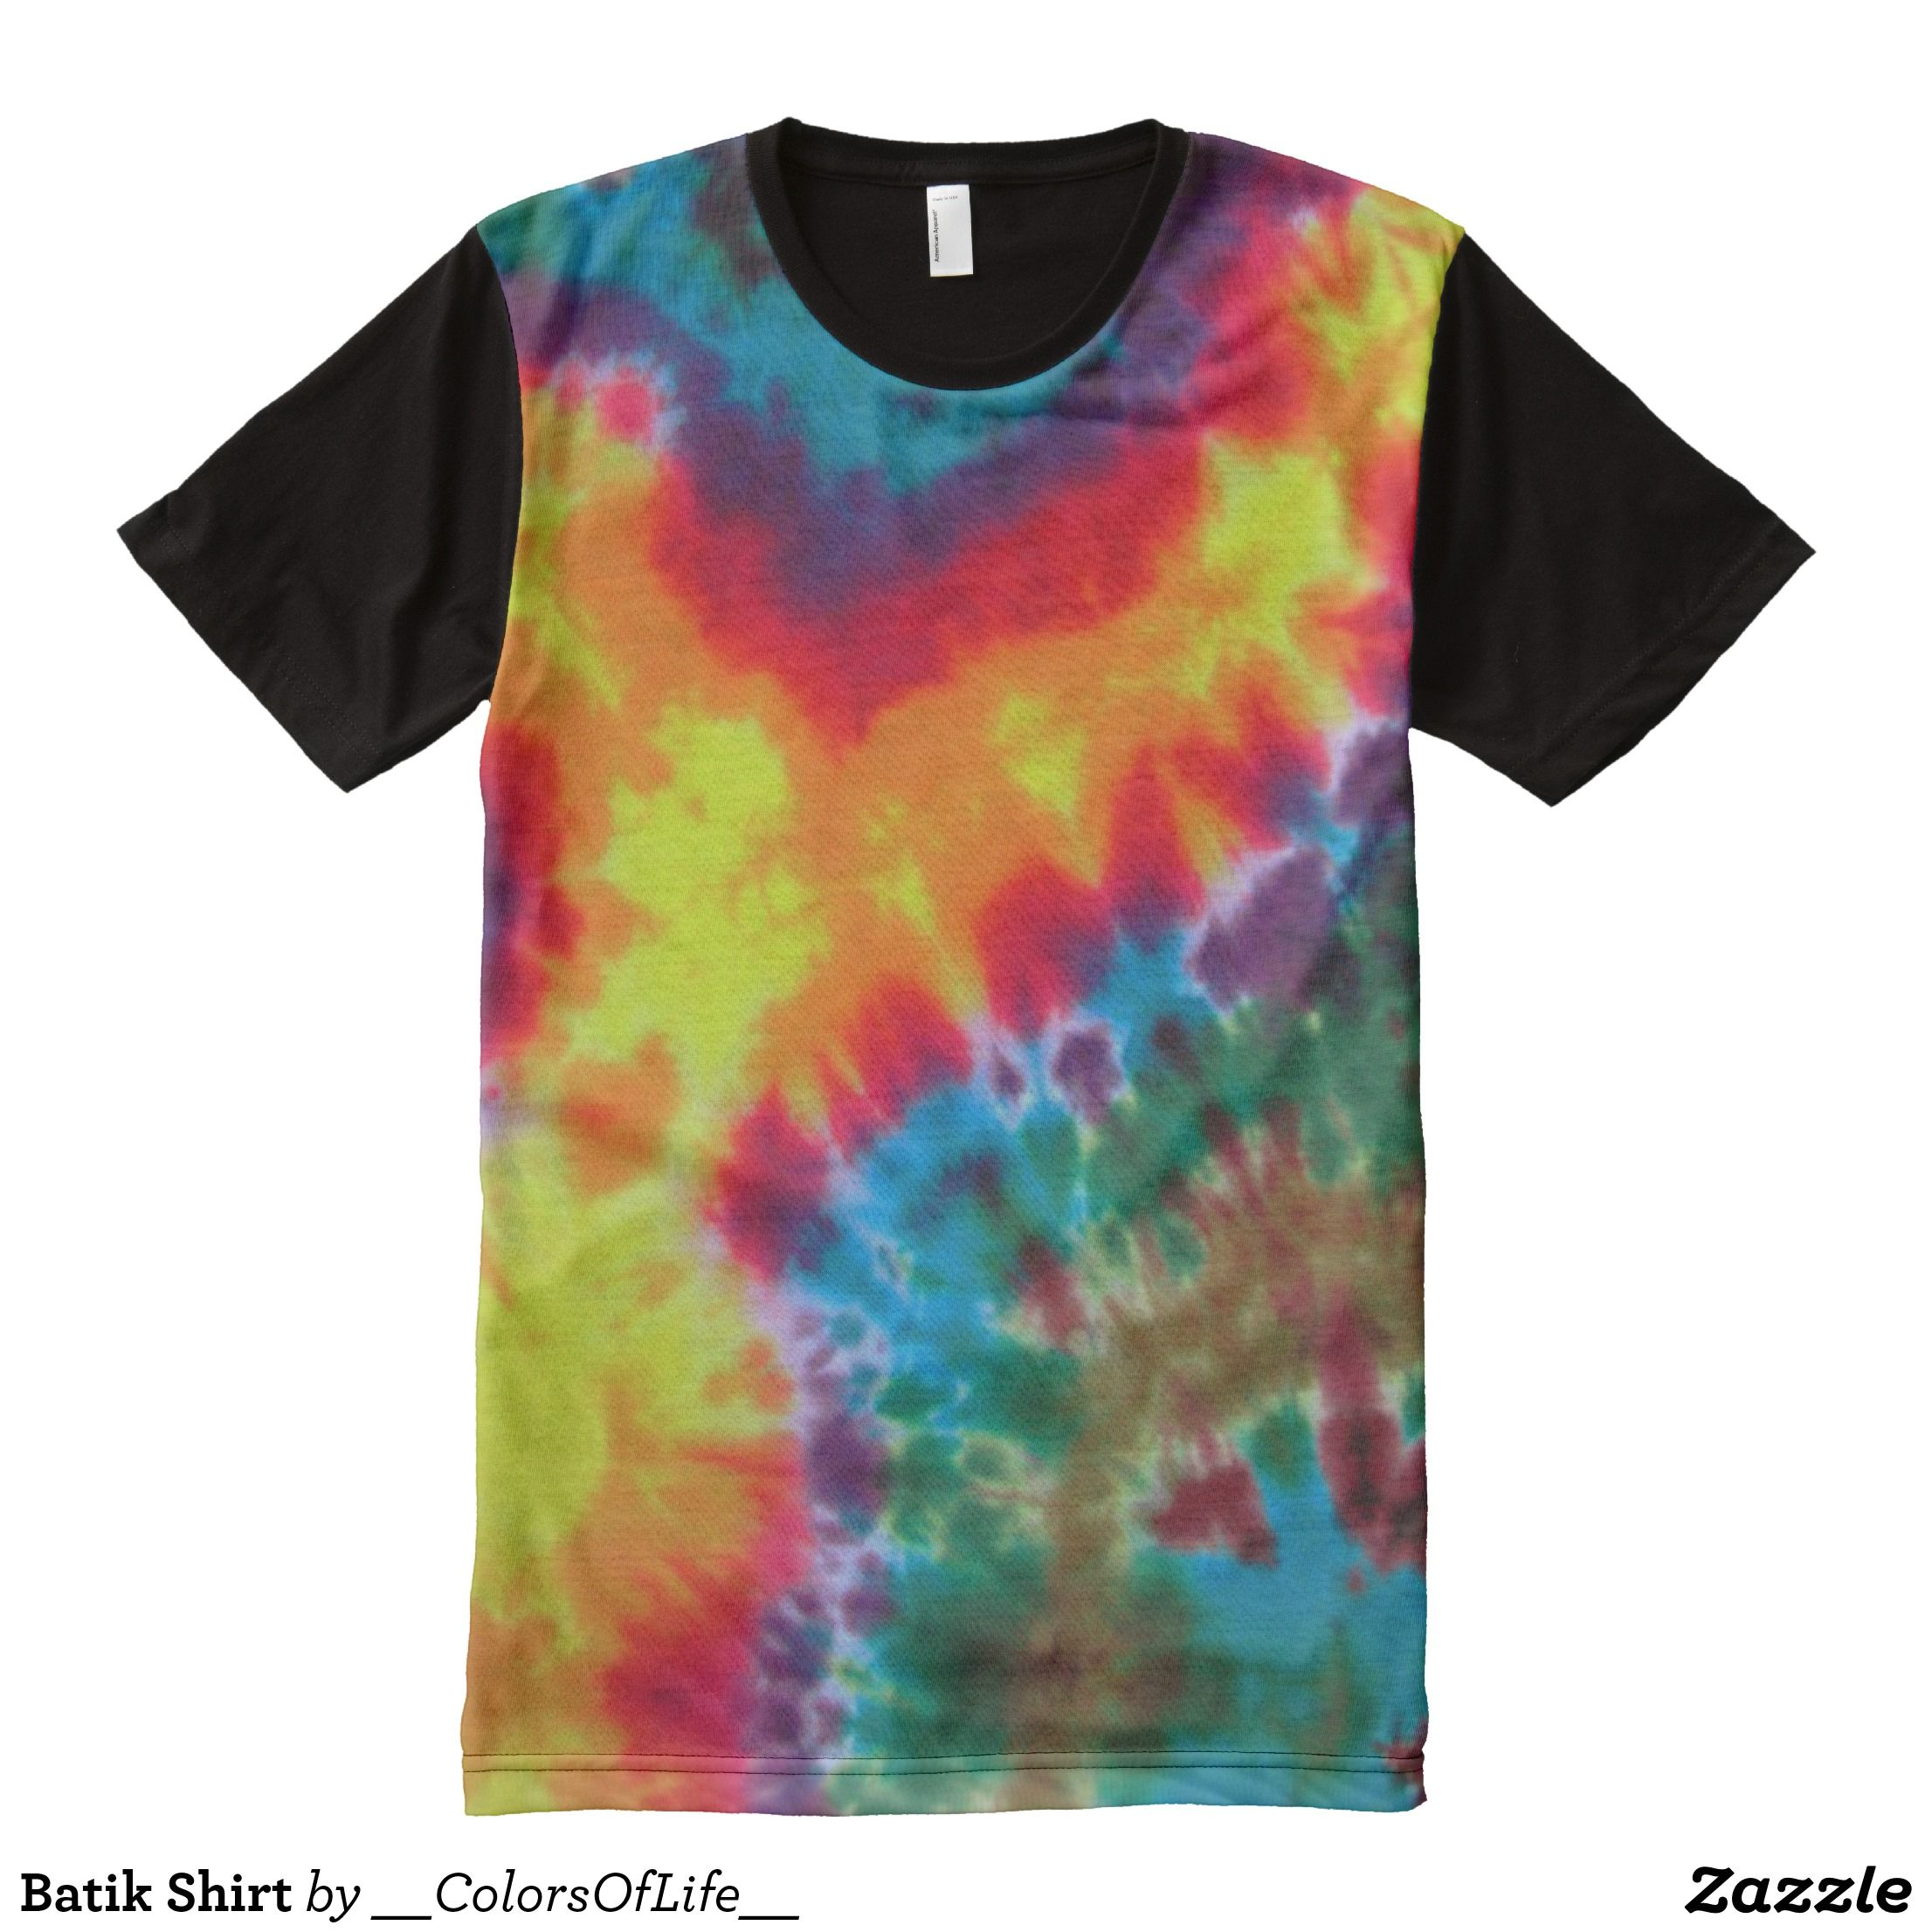 Stylish Shirts, Tie Dye